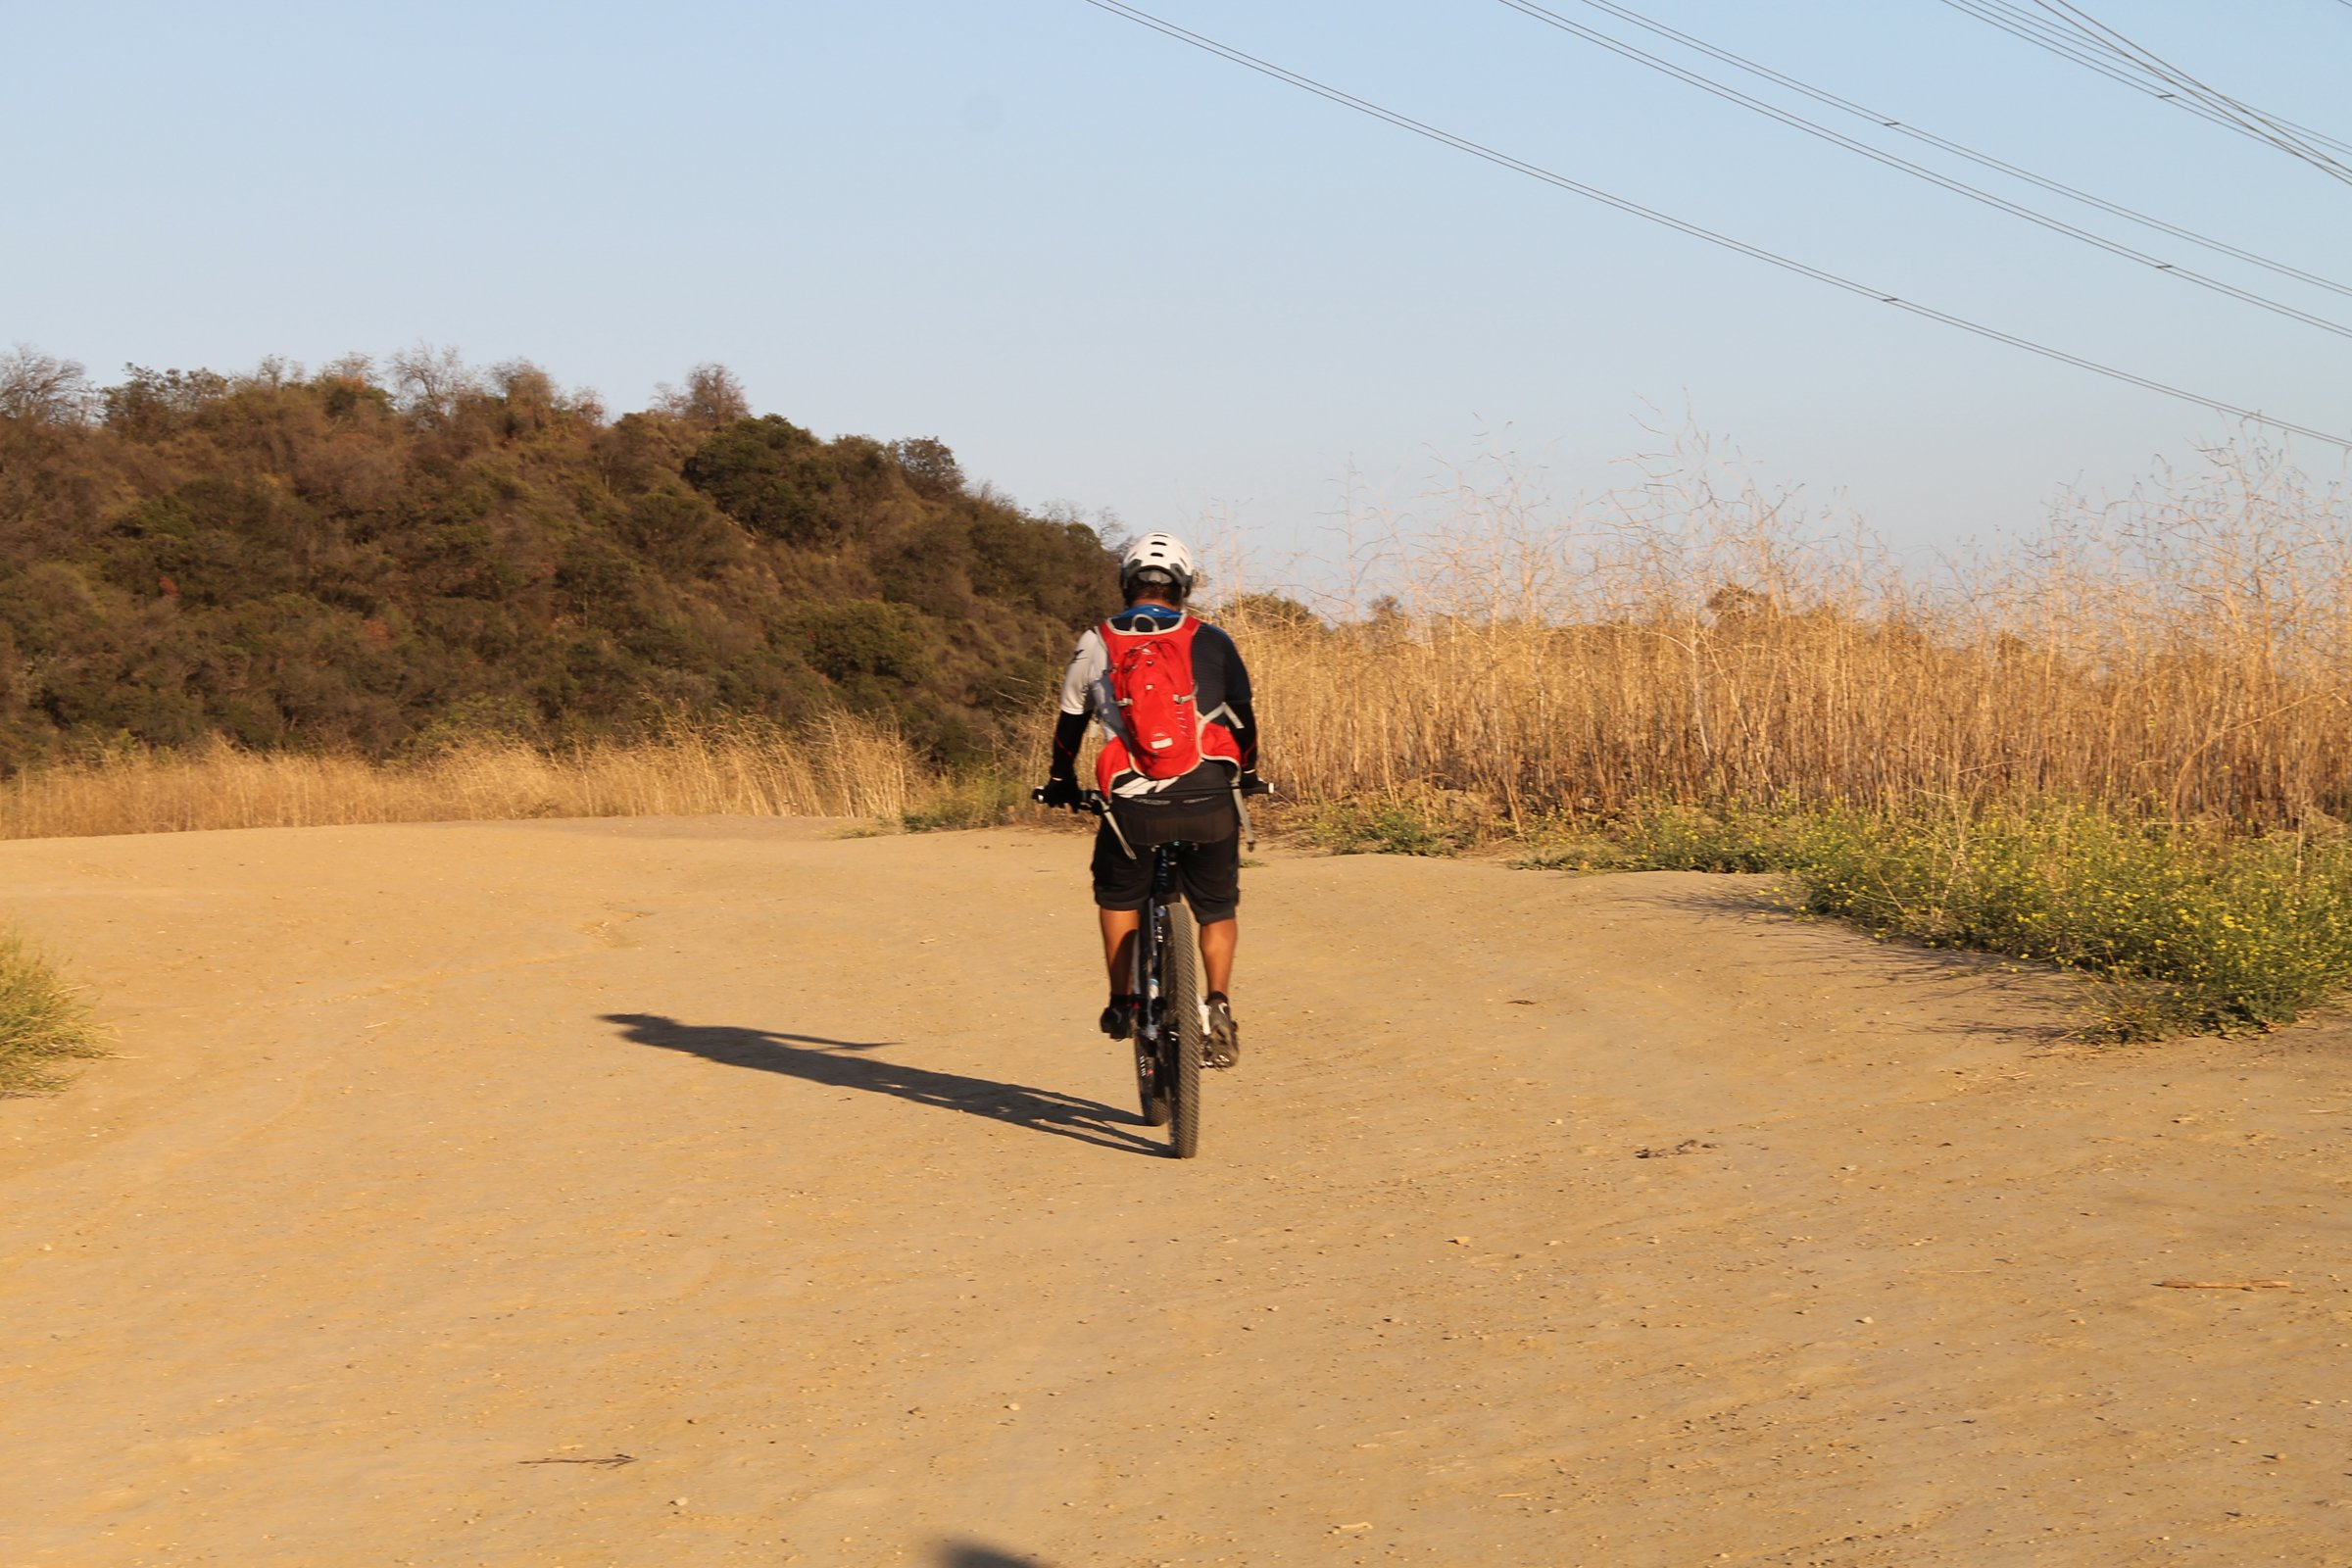 Cyclist Riding Bicycle on Dirt Path